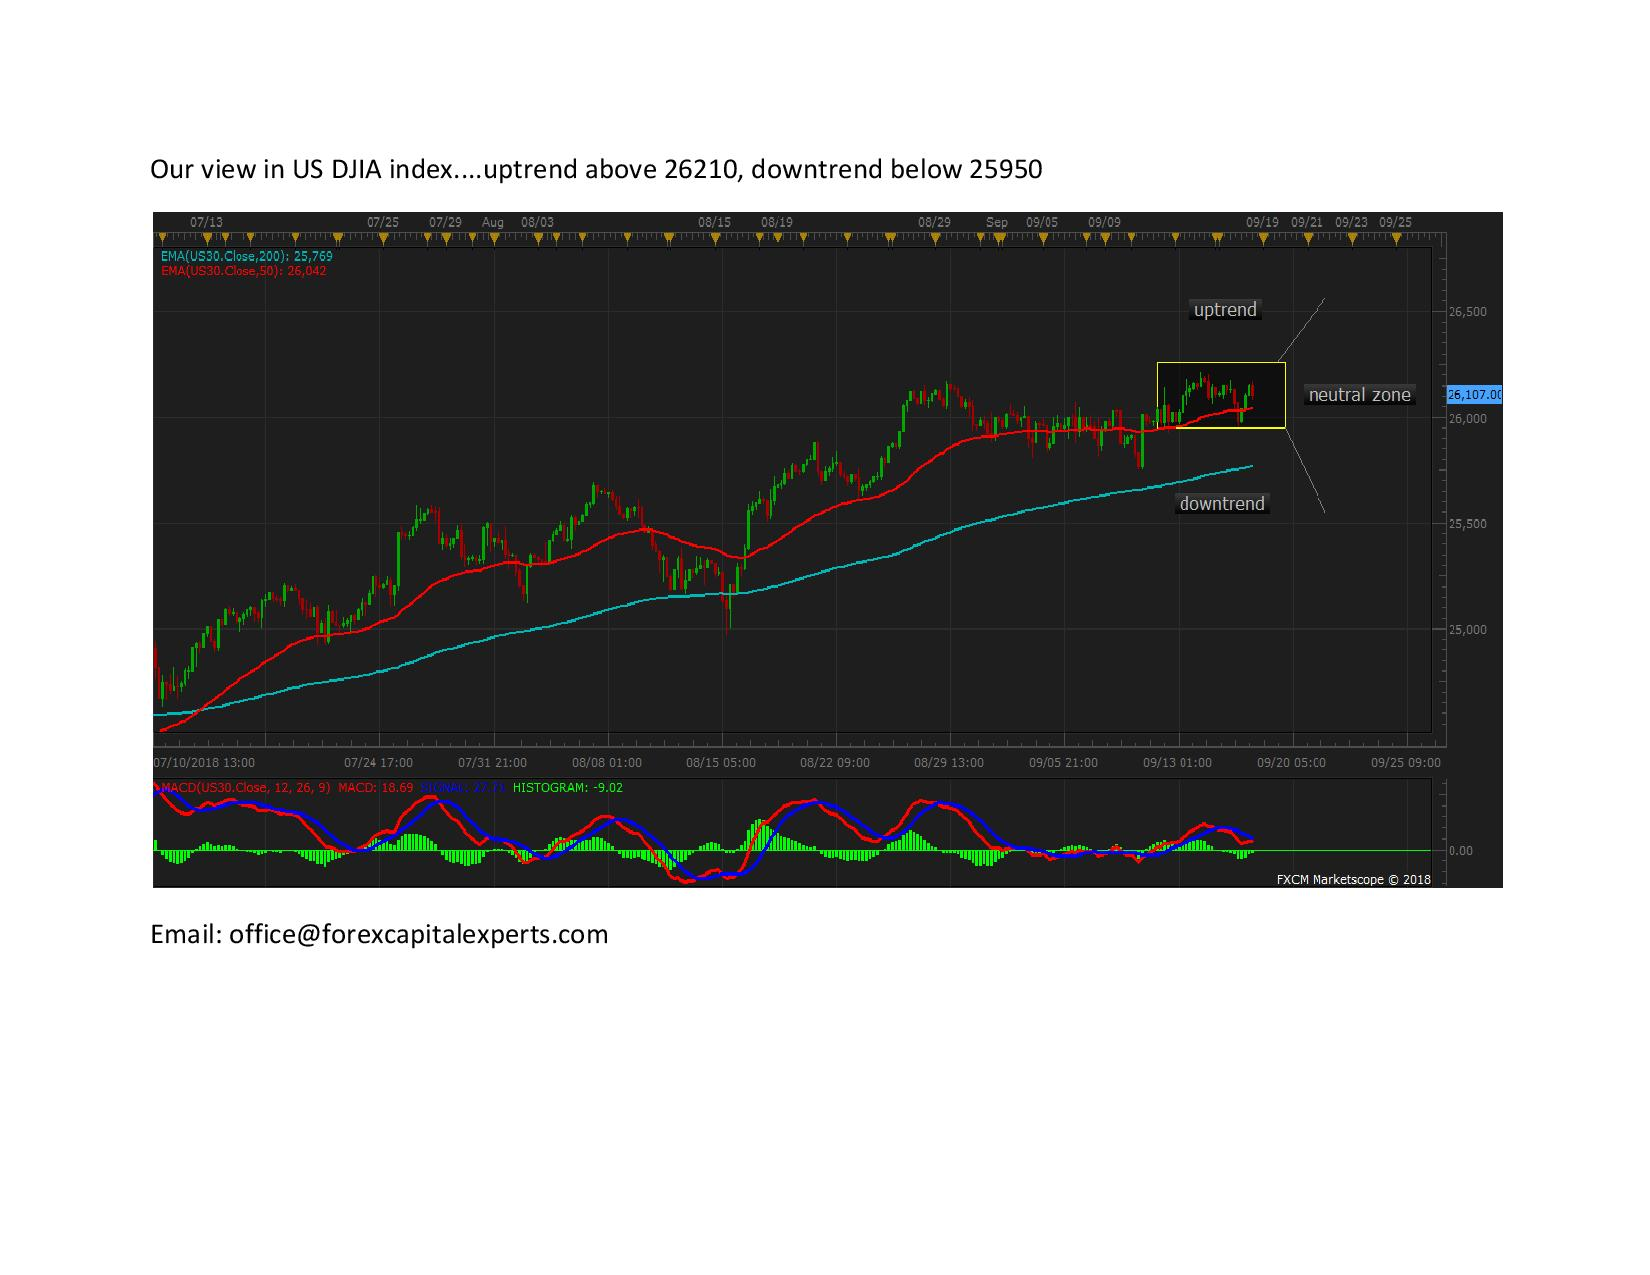 Our view in US DJIA index page 001